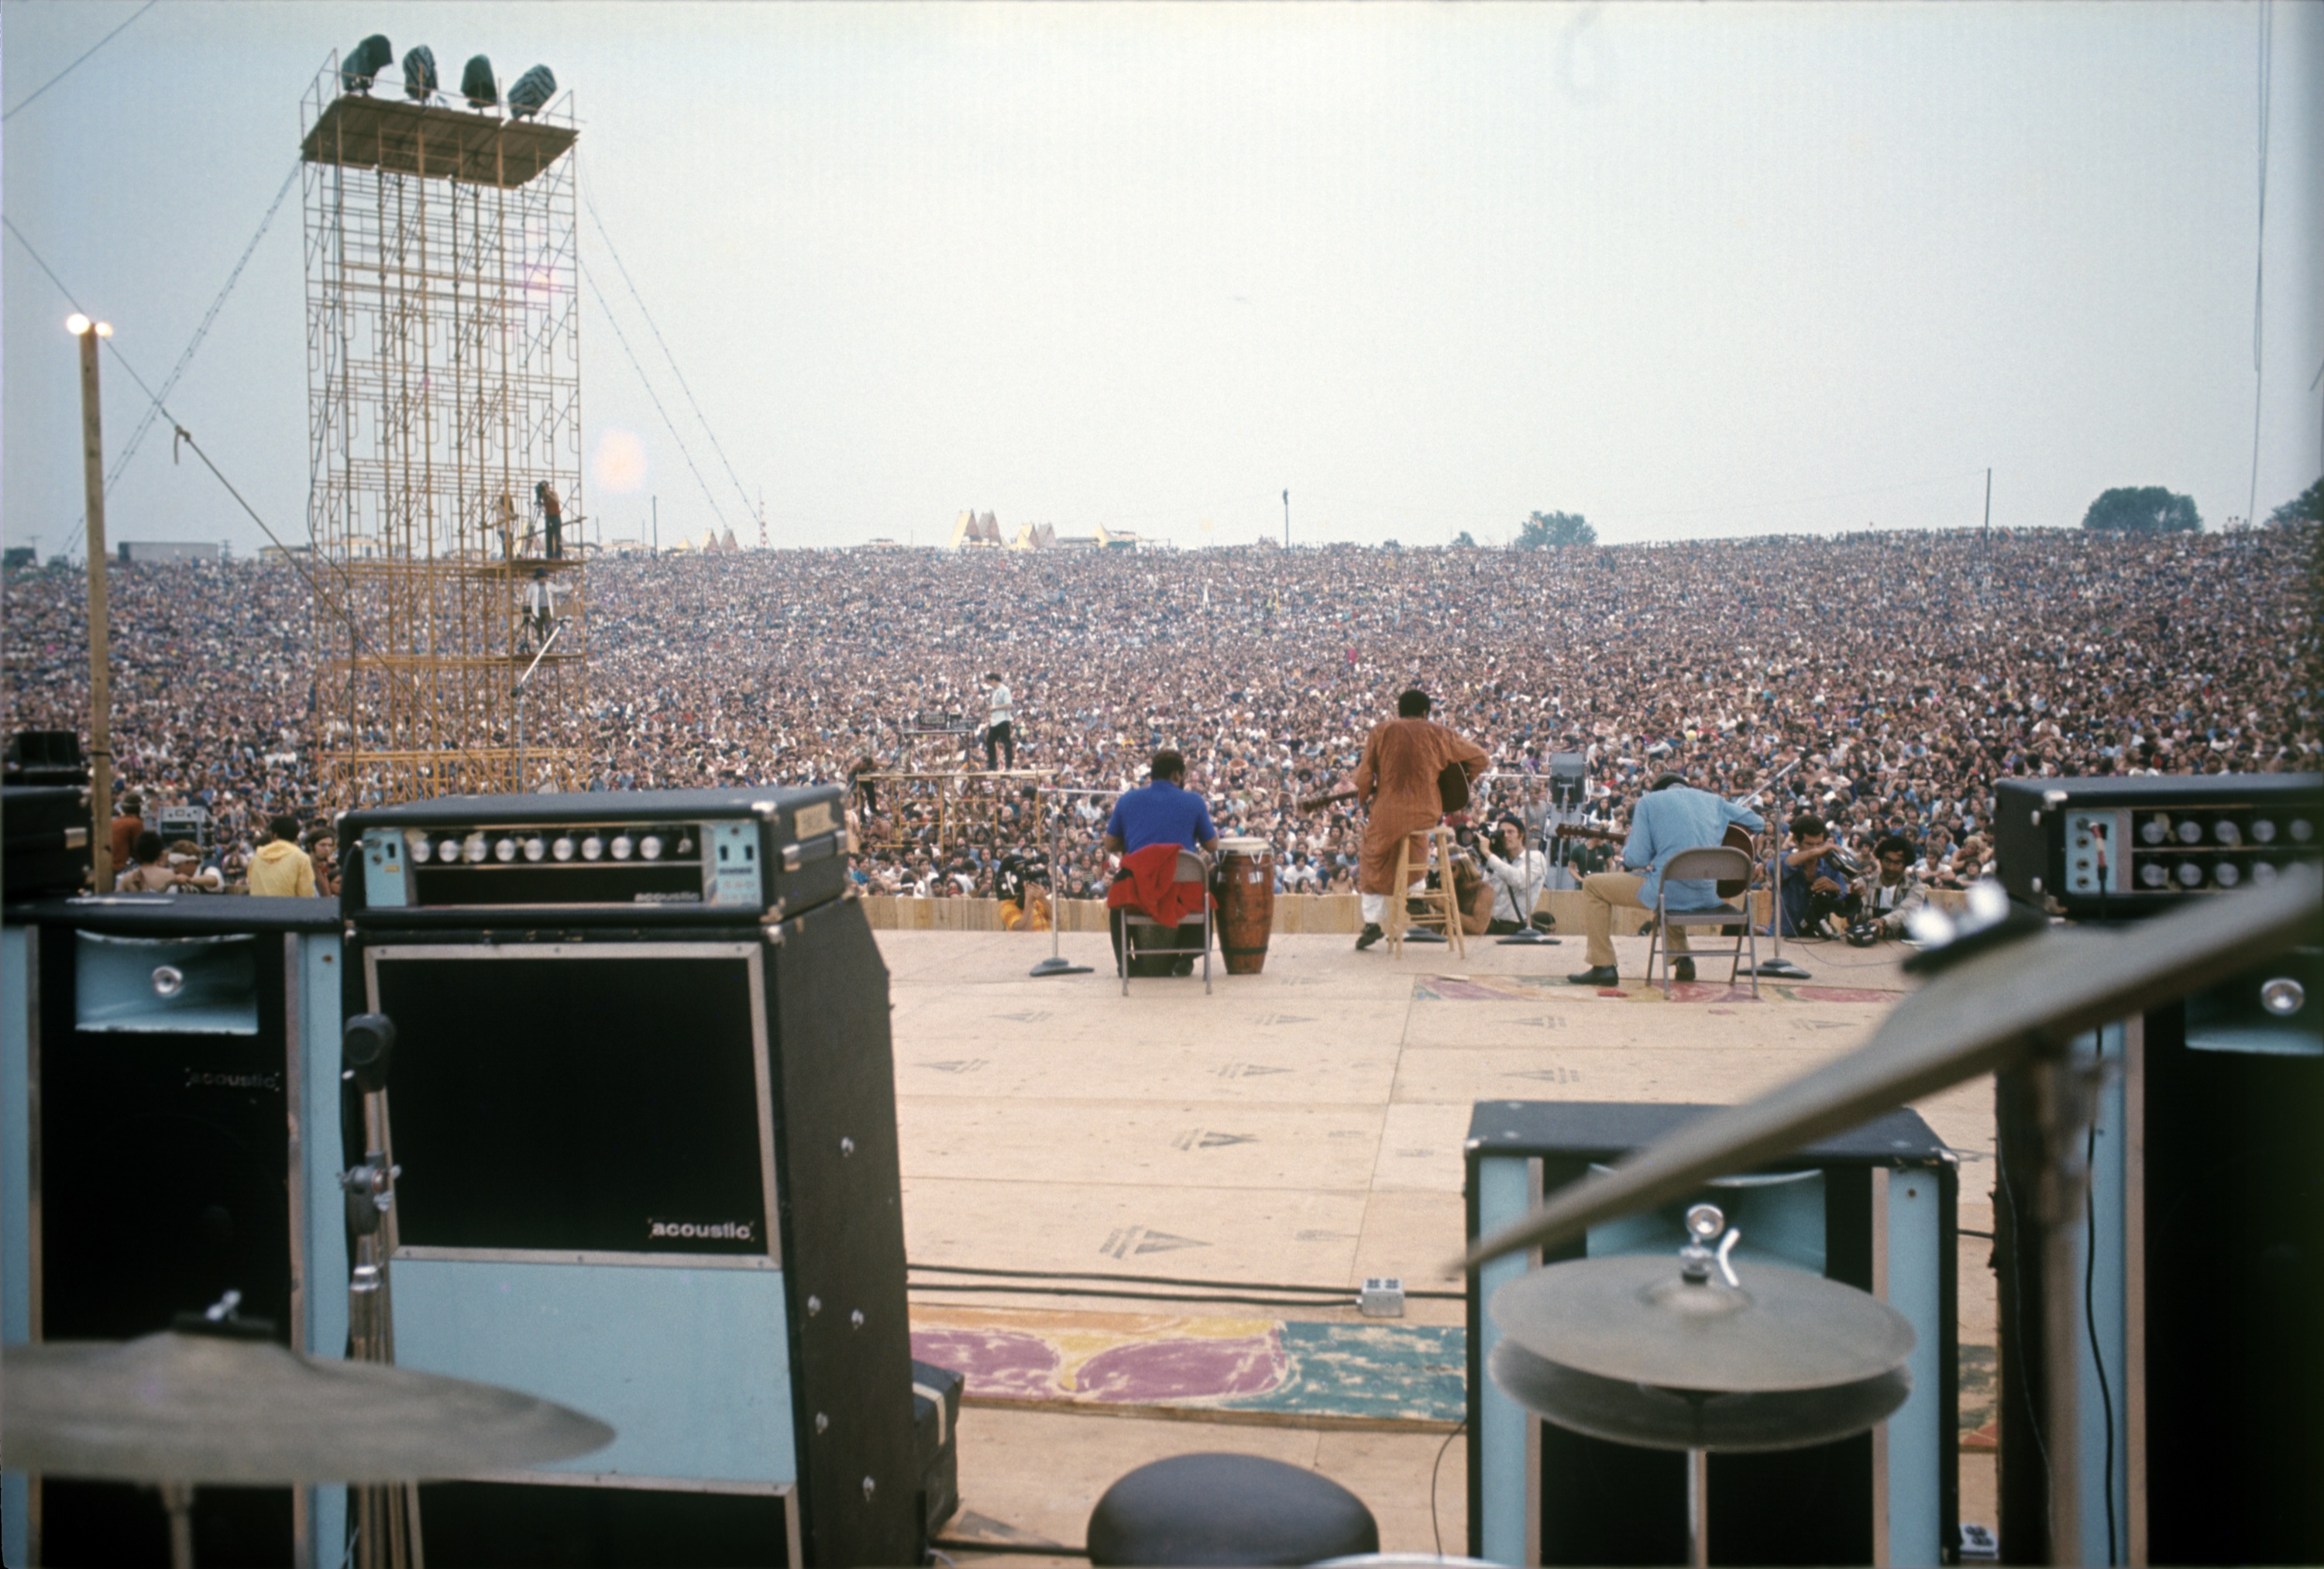 The spirit of Woodstock lives on